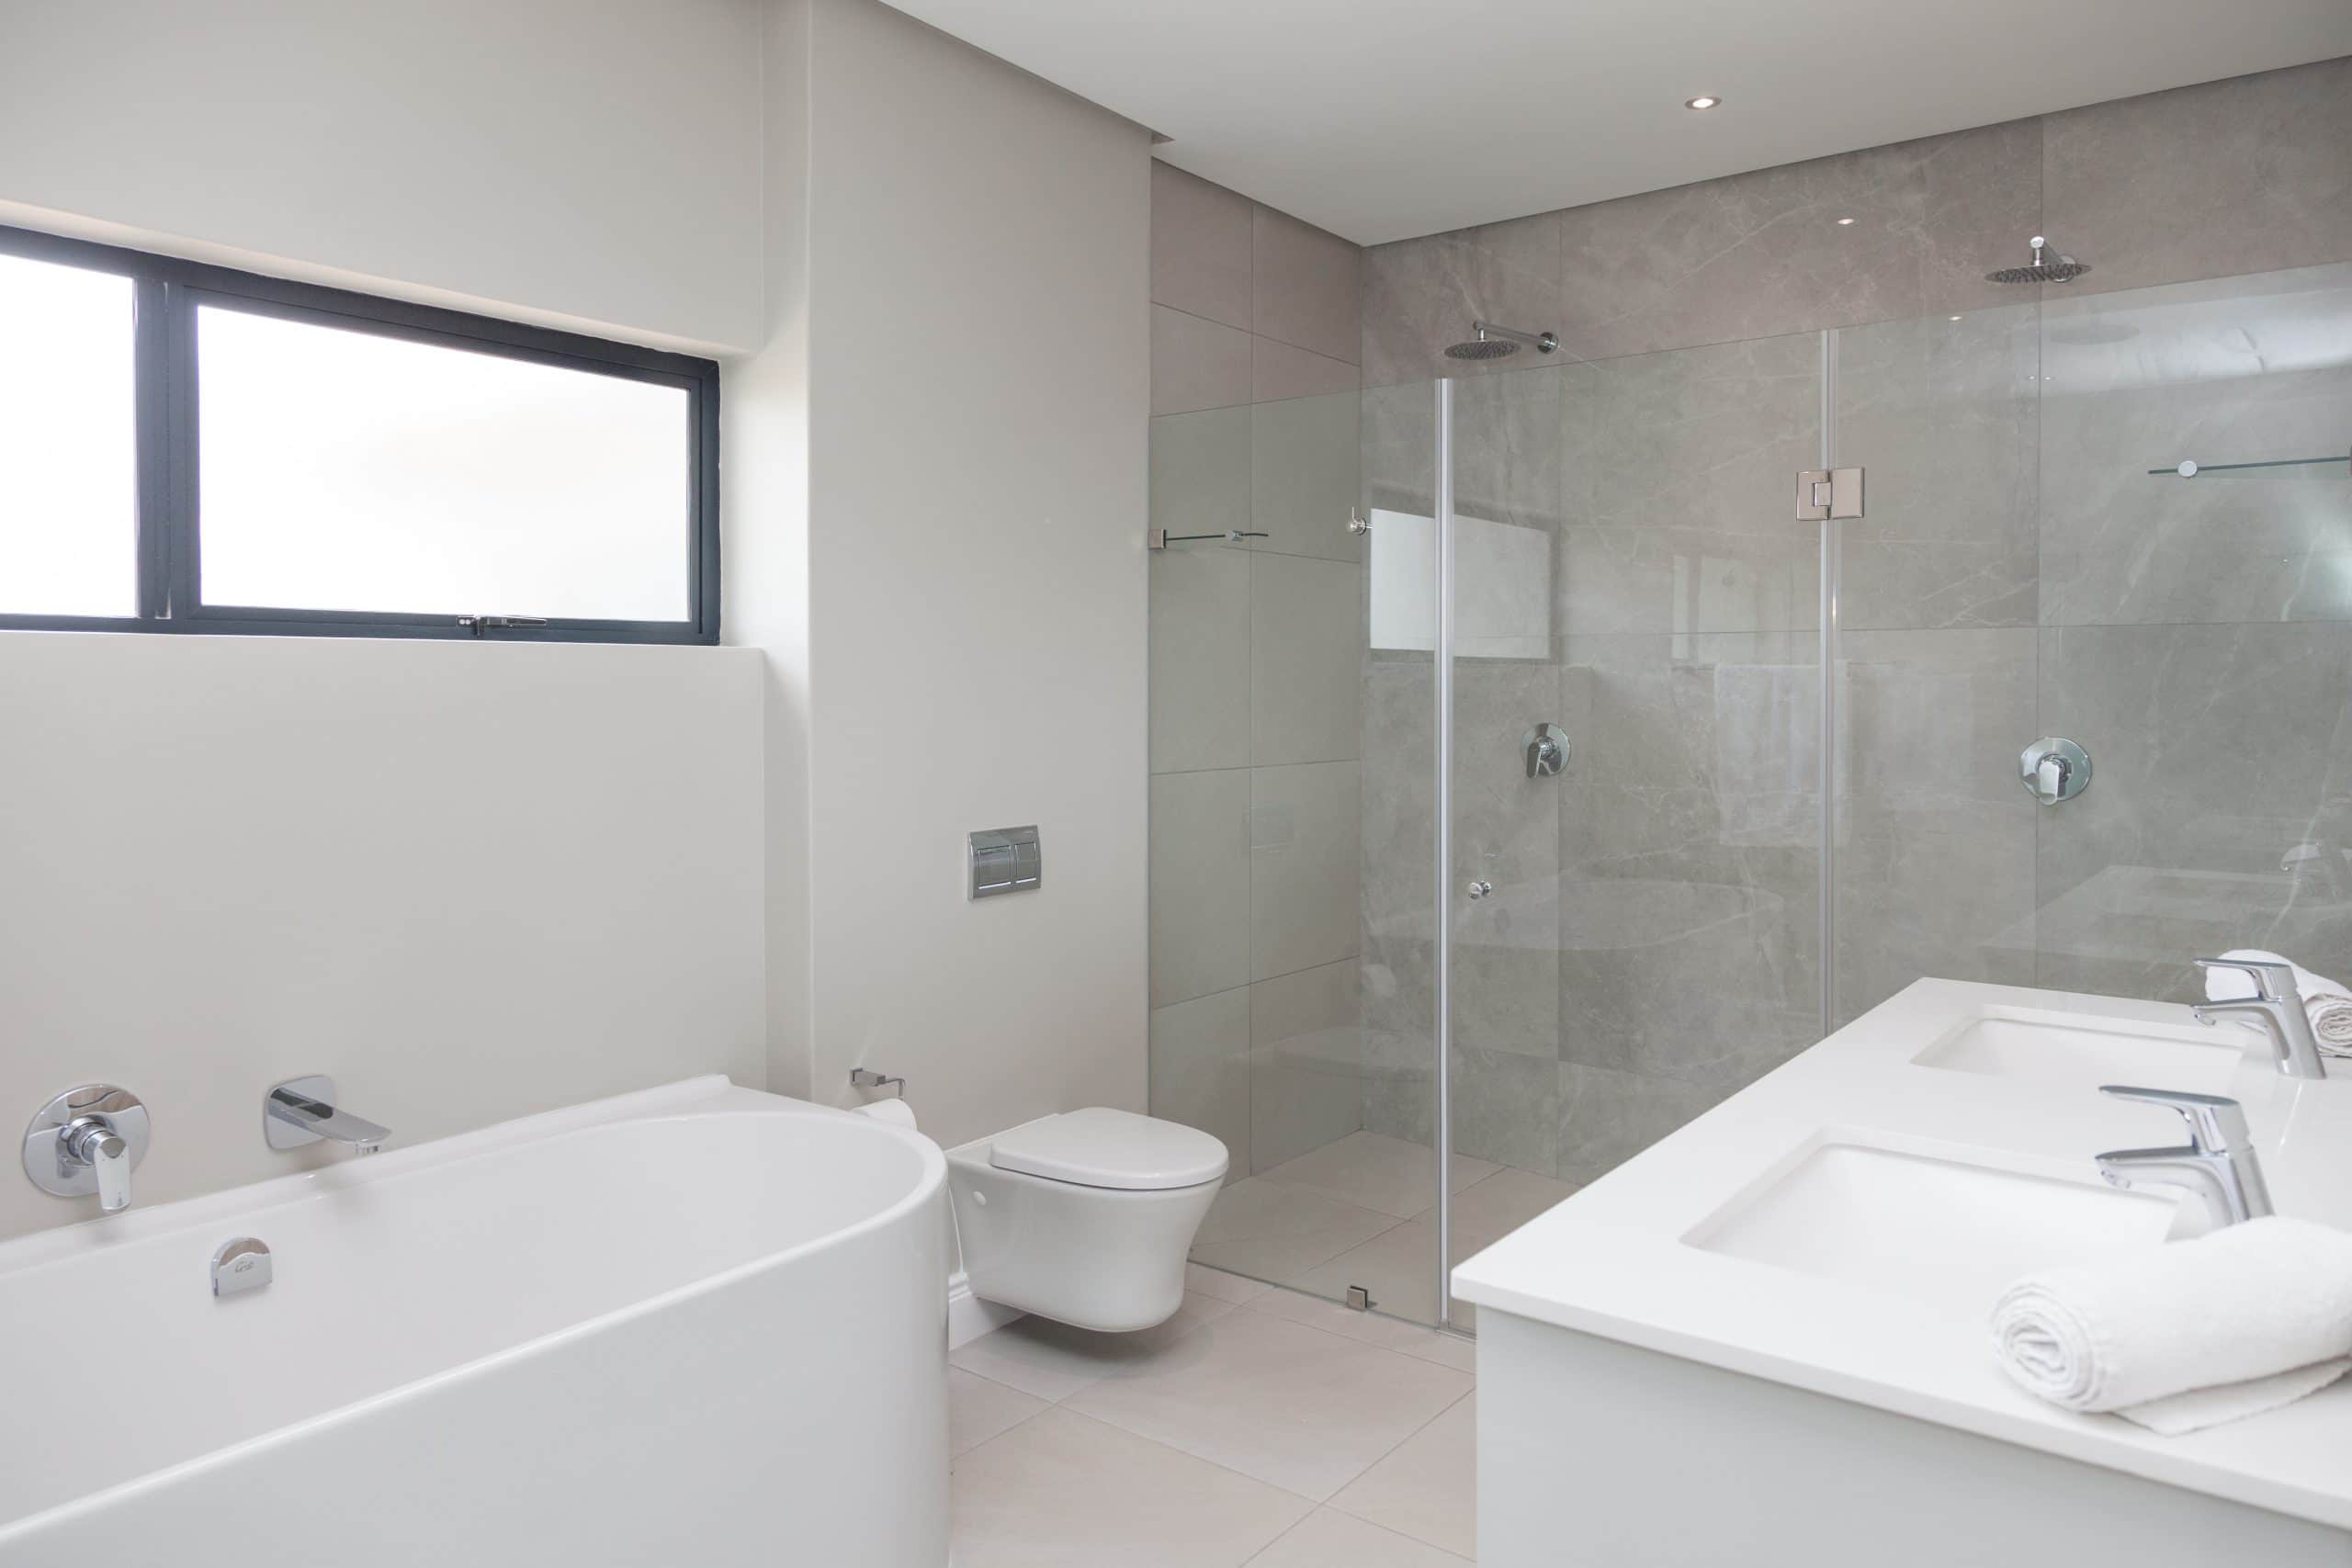 freestanding bath with frame less showers in langebaan country estate designed by carla cronje